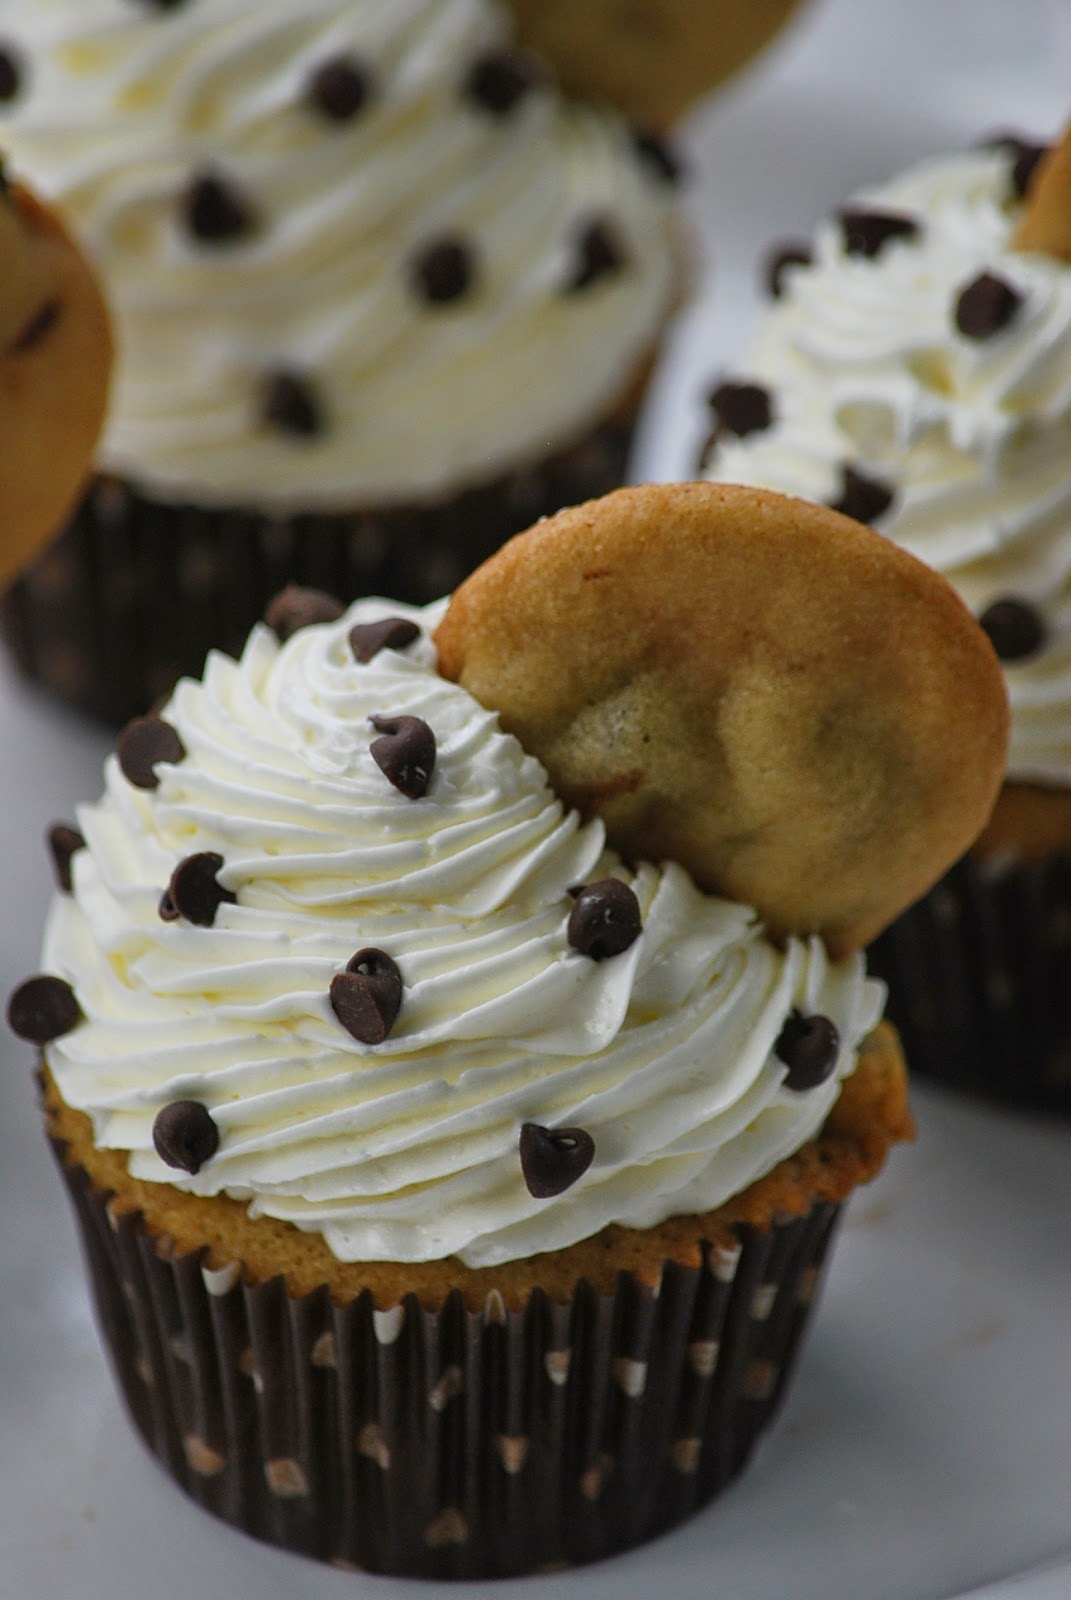 My story in recipes: Chocolate Chip Cookie Dough Cupcakes